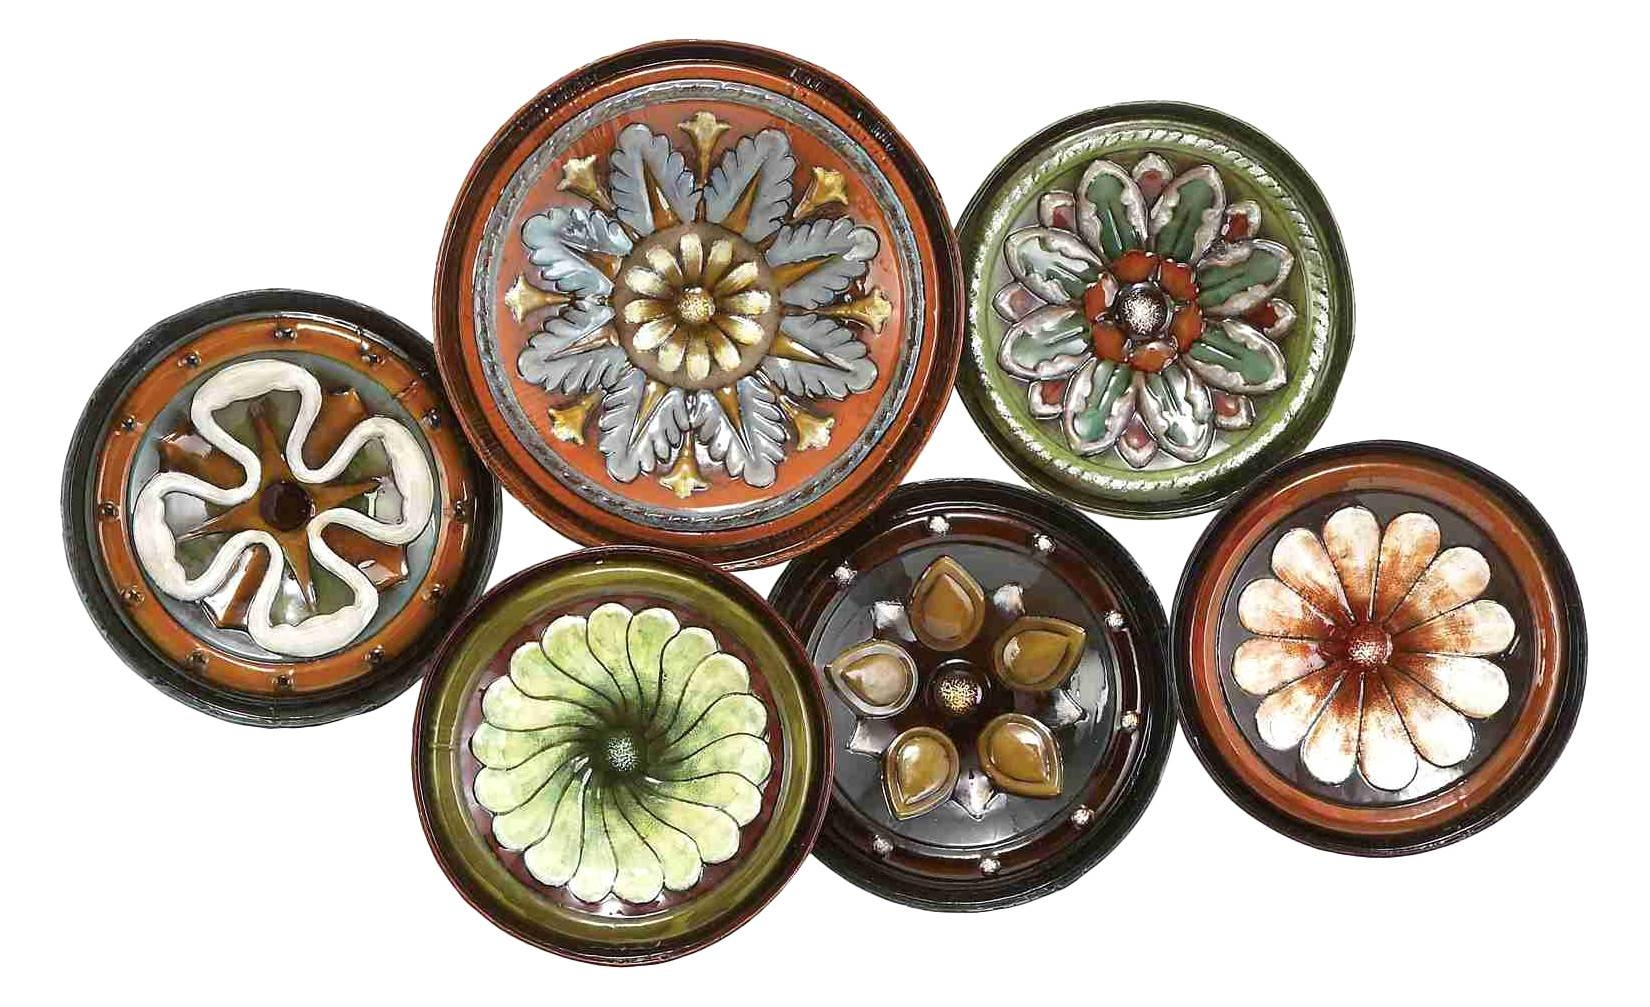 Flowery Plate Collection – Floral Metal Wall Art Intended For Most Popular India Metal Wall Art (Gallery 18 of 20)